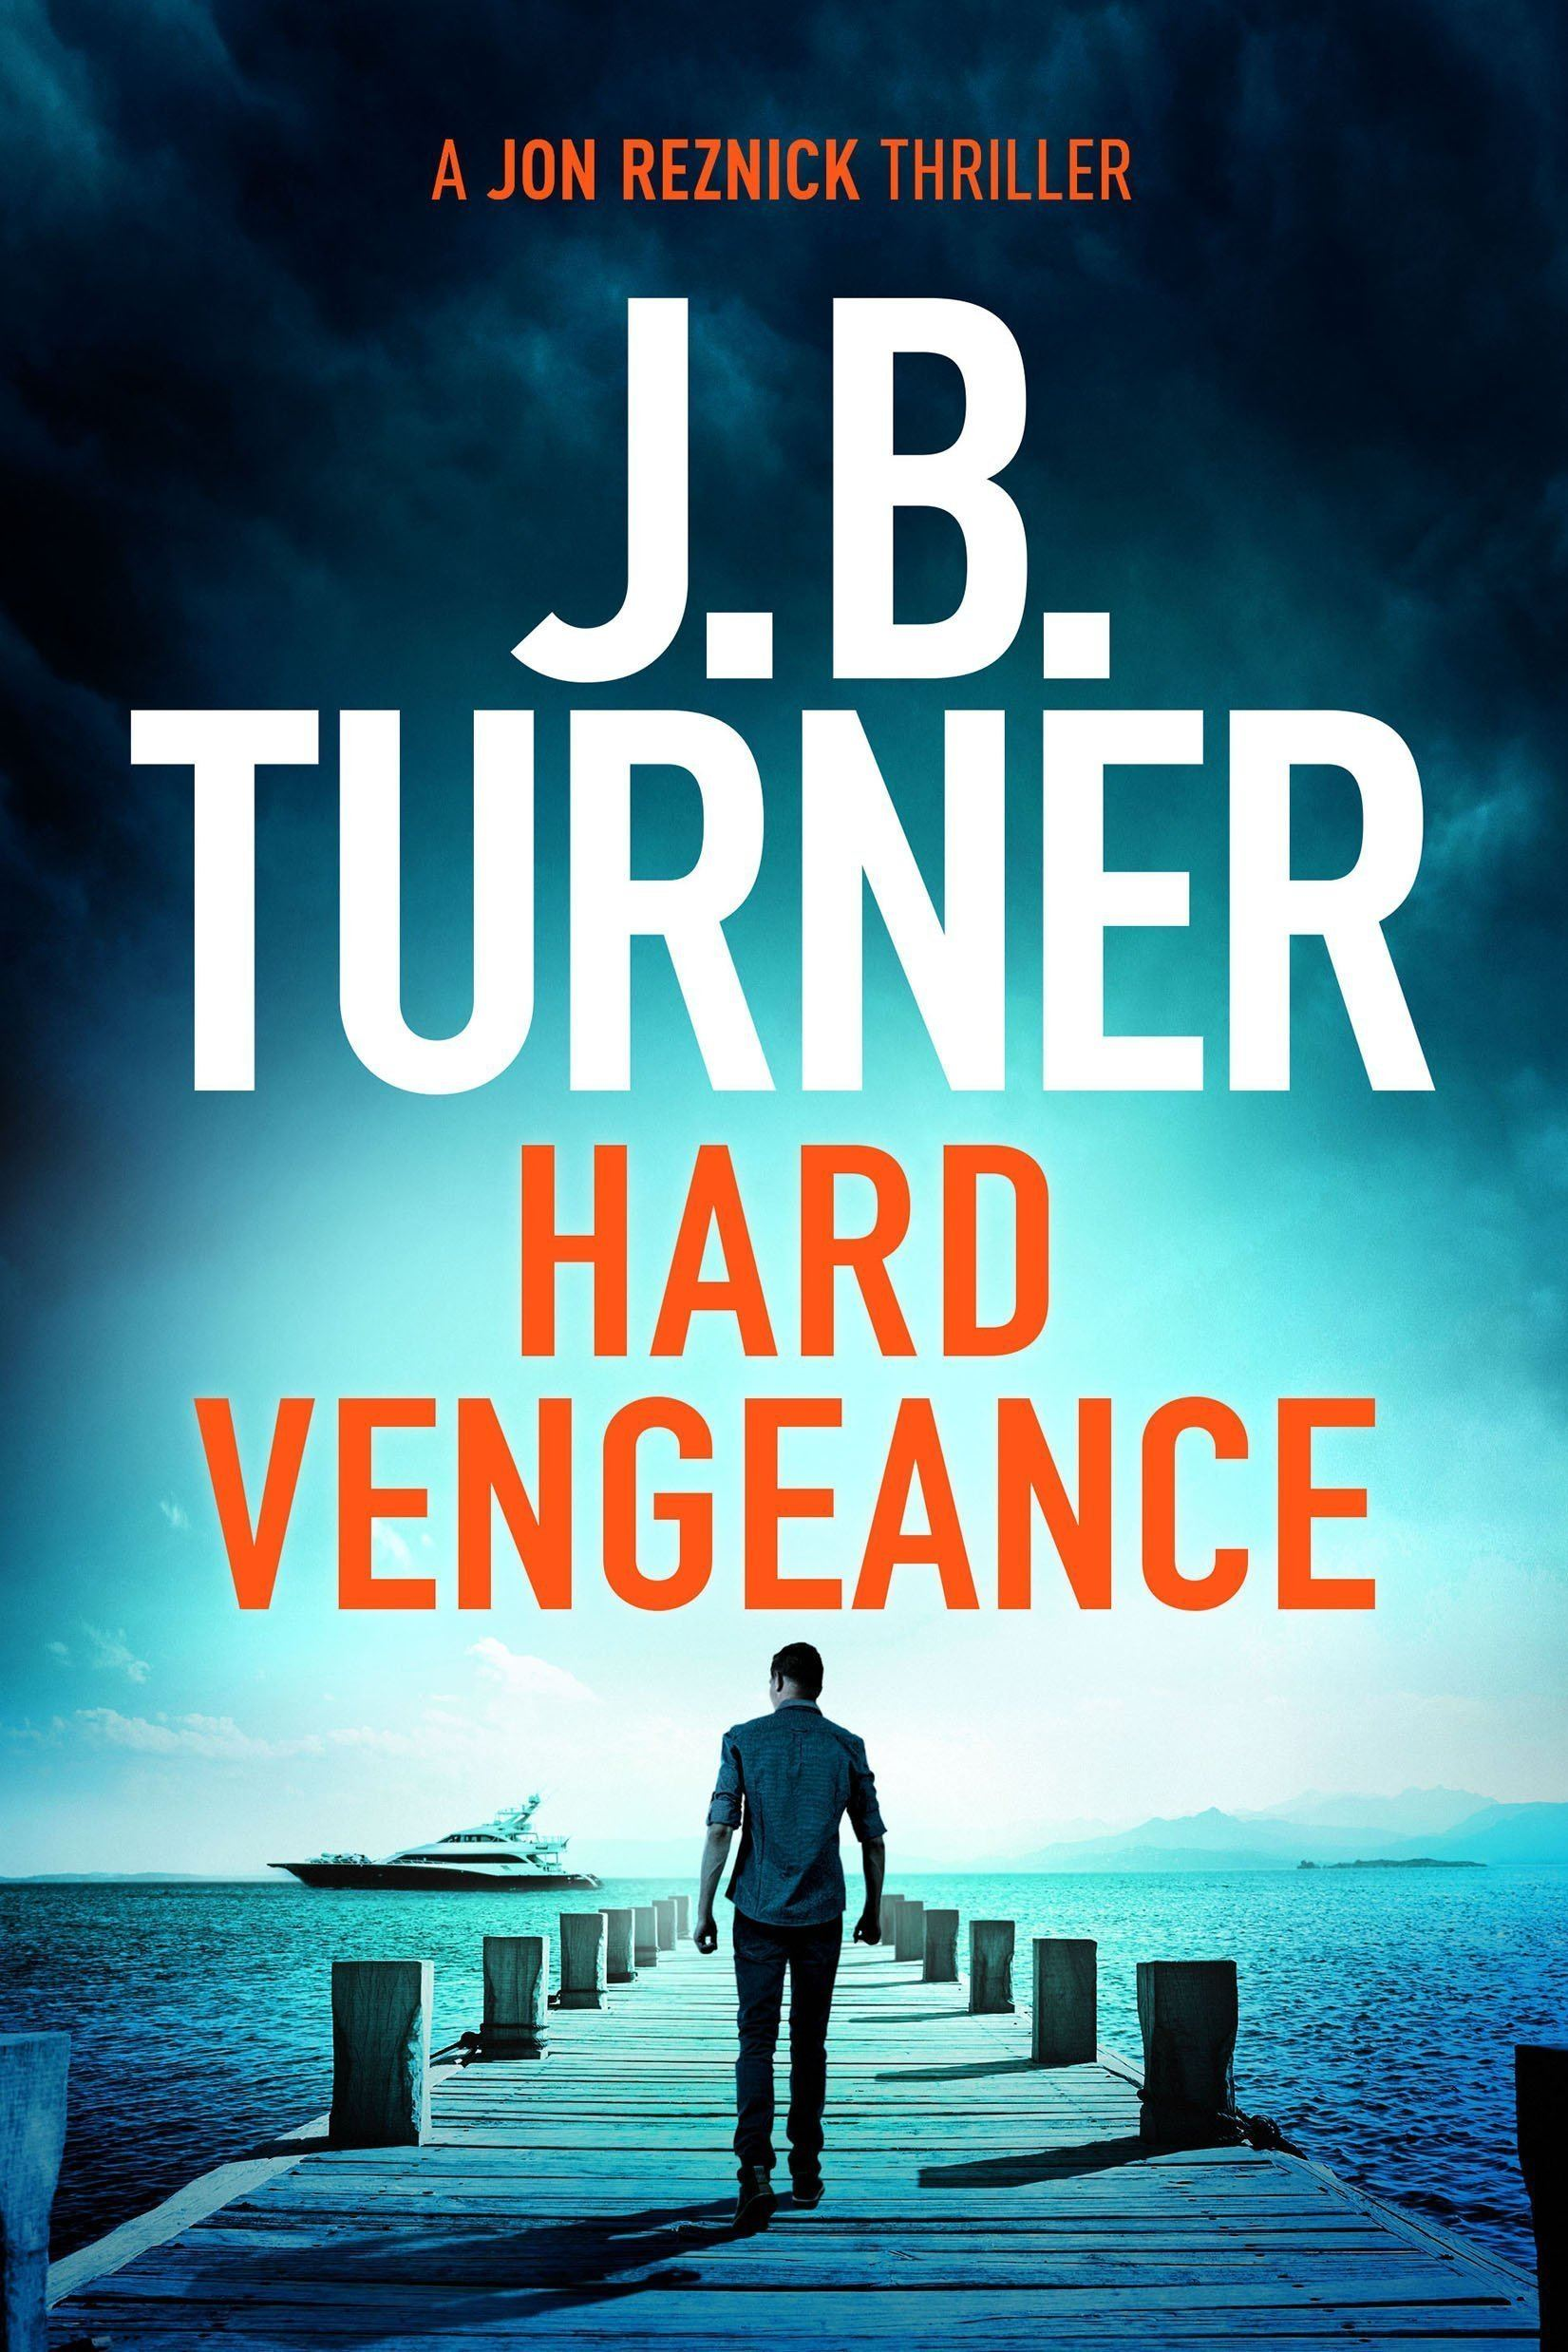 Cover for J.B. Turner's Jon Reznick thriller, Hard Vengeance.